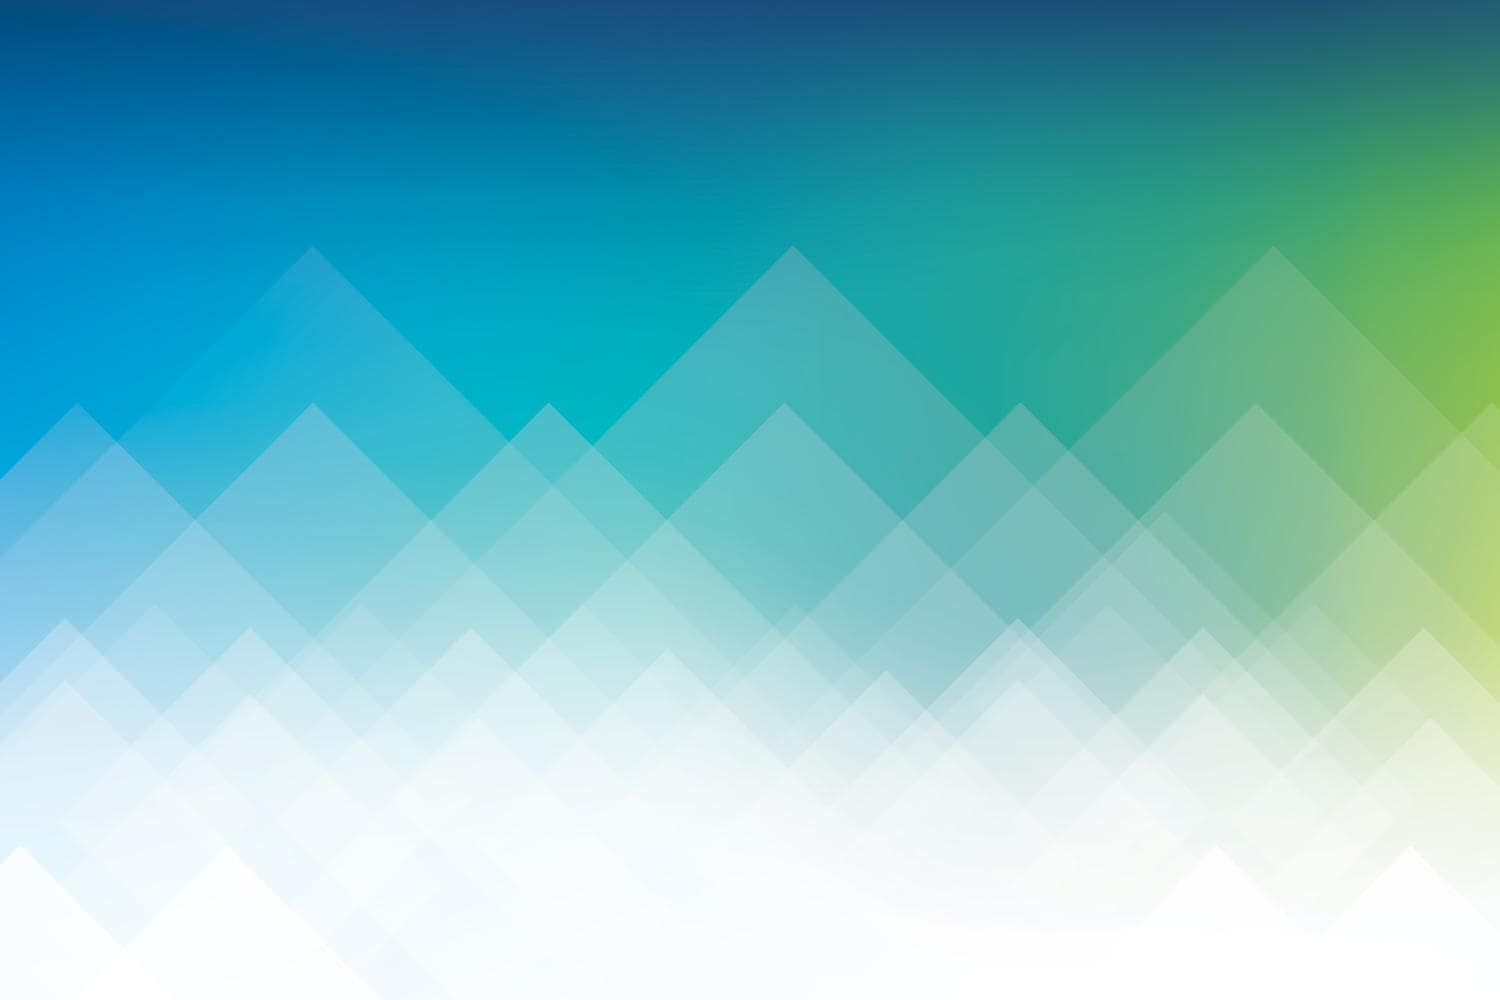 Pixels background abstract blue green futuristic background with pixels decoration items